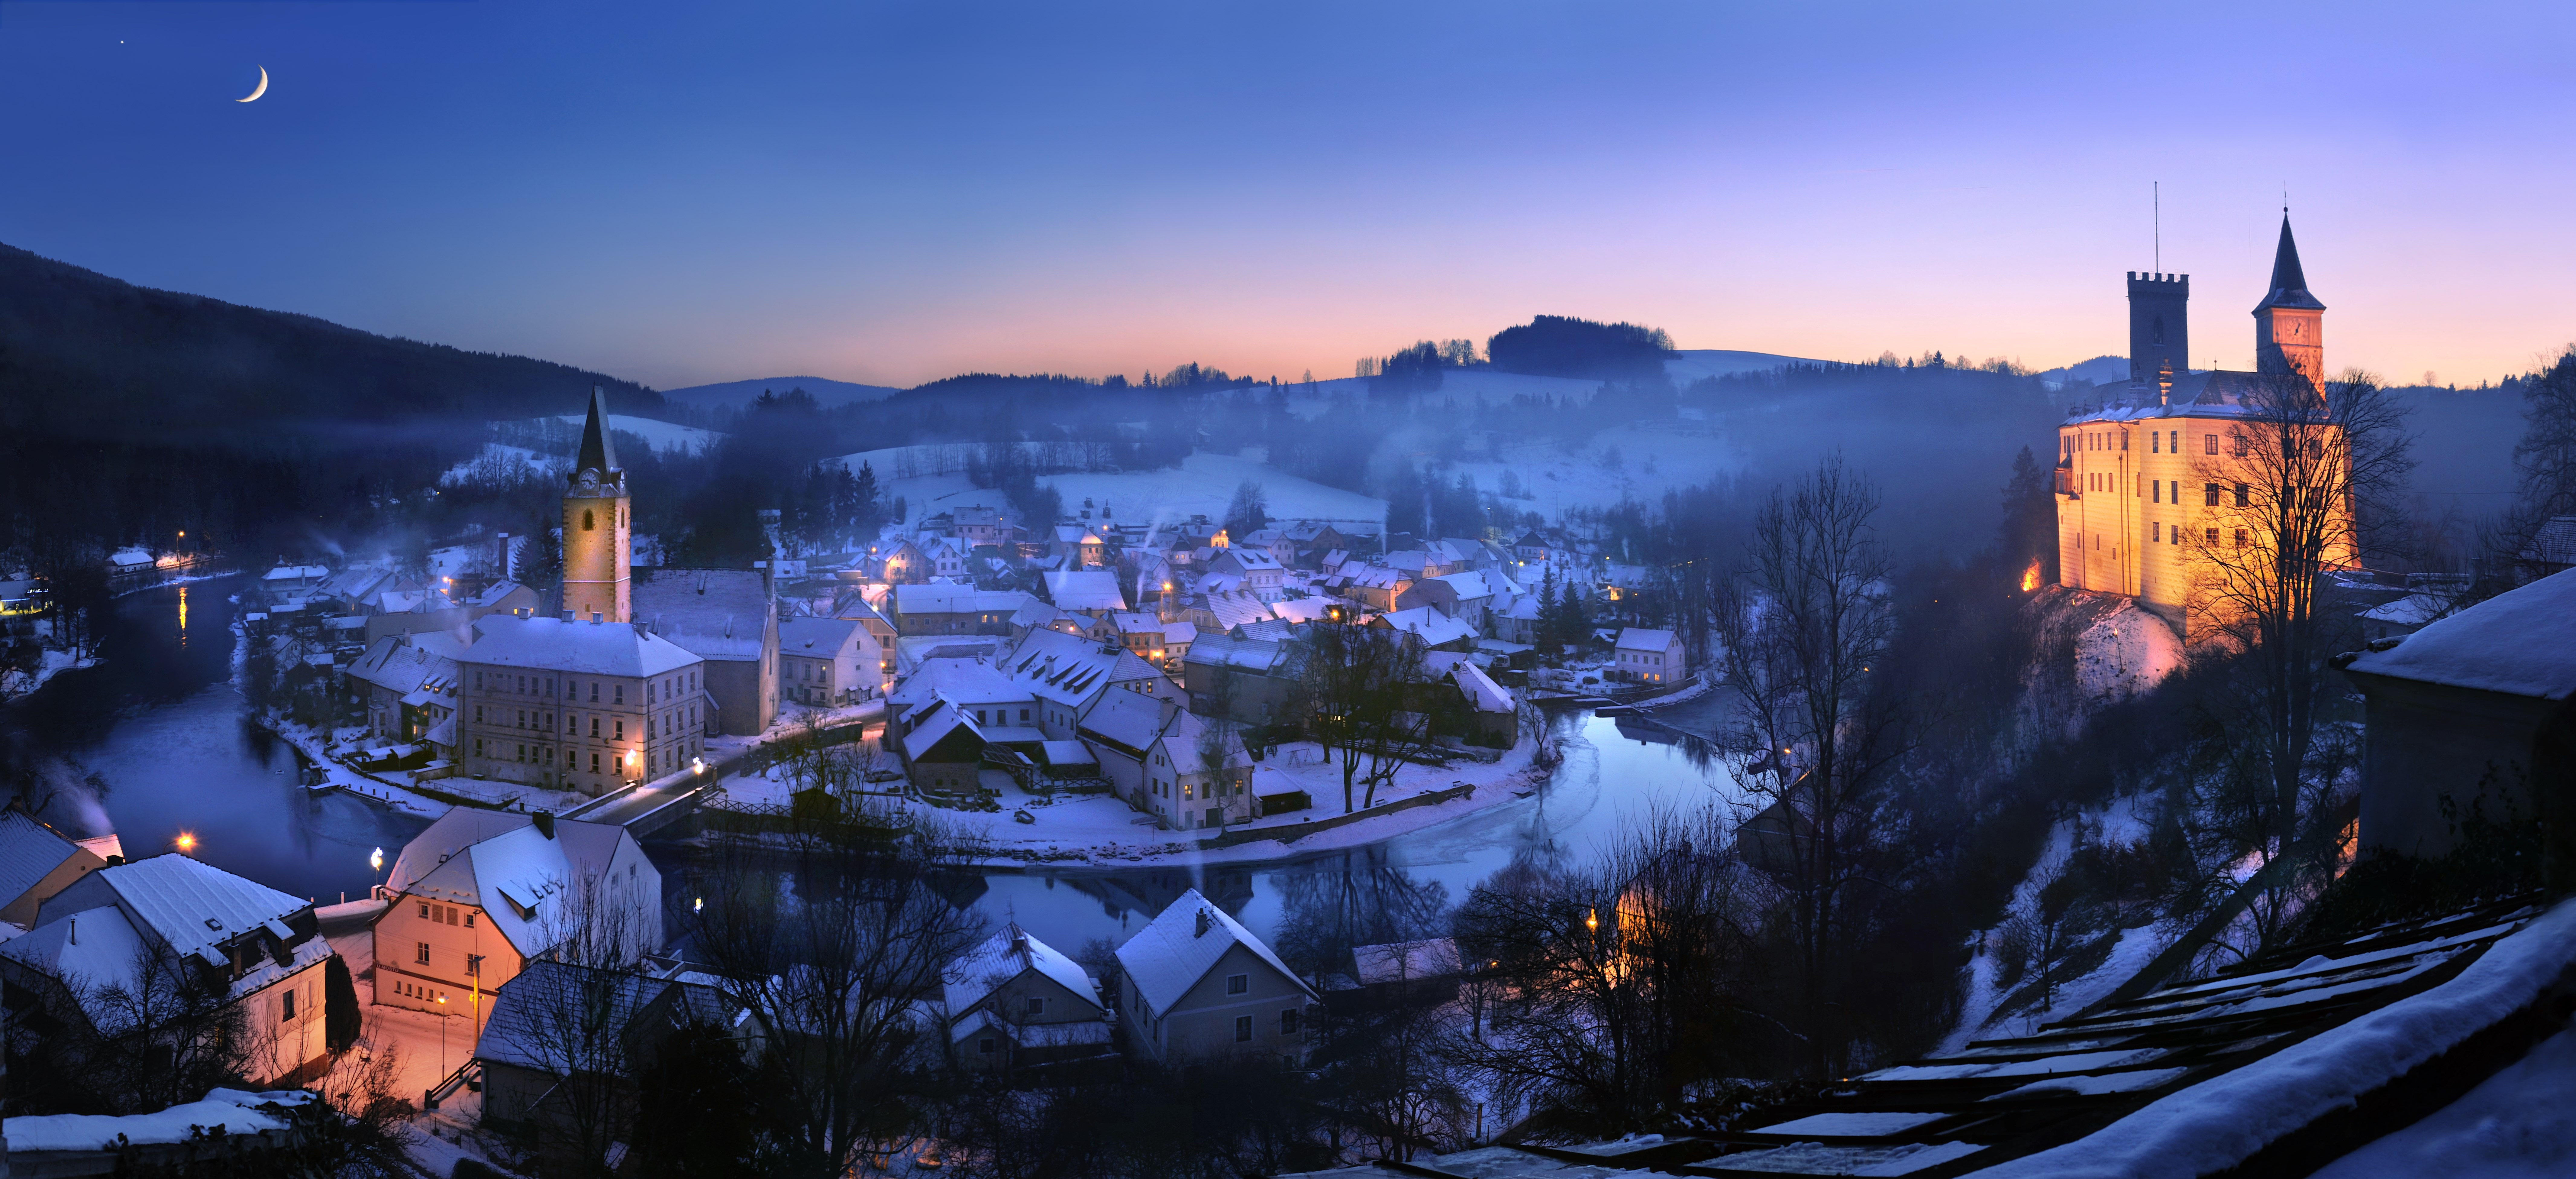 Czech Republic offers the right winter mood